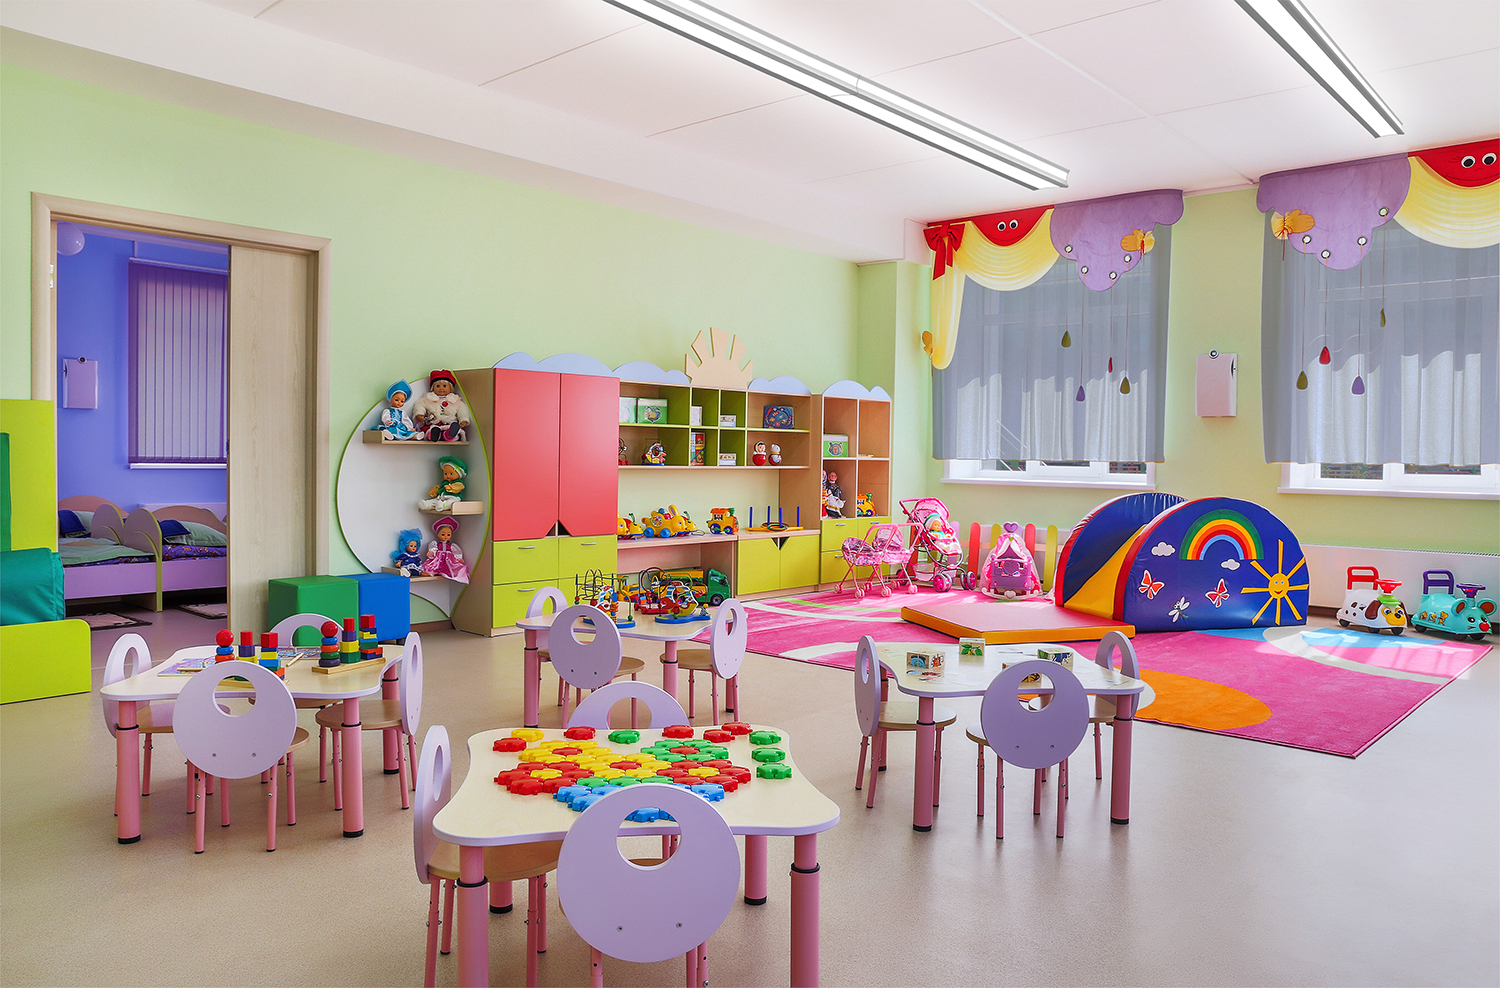 Latitude direct/indirect linear surface mounted ceiling fixtures in a bright daycare facility